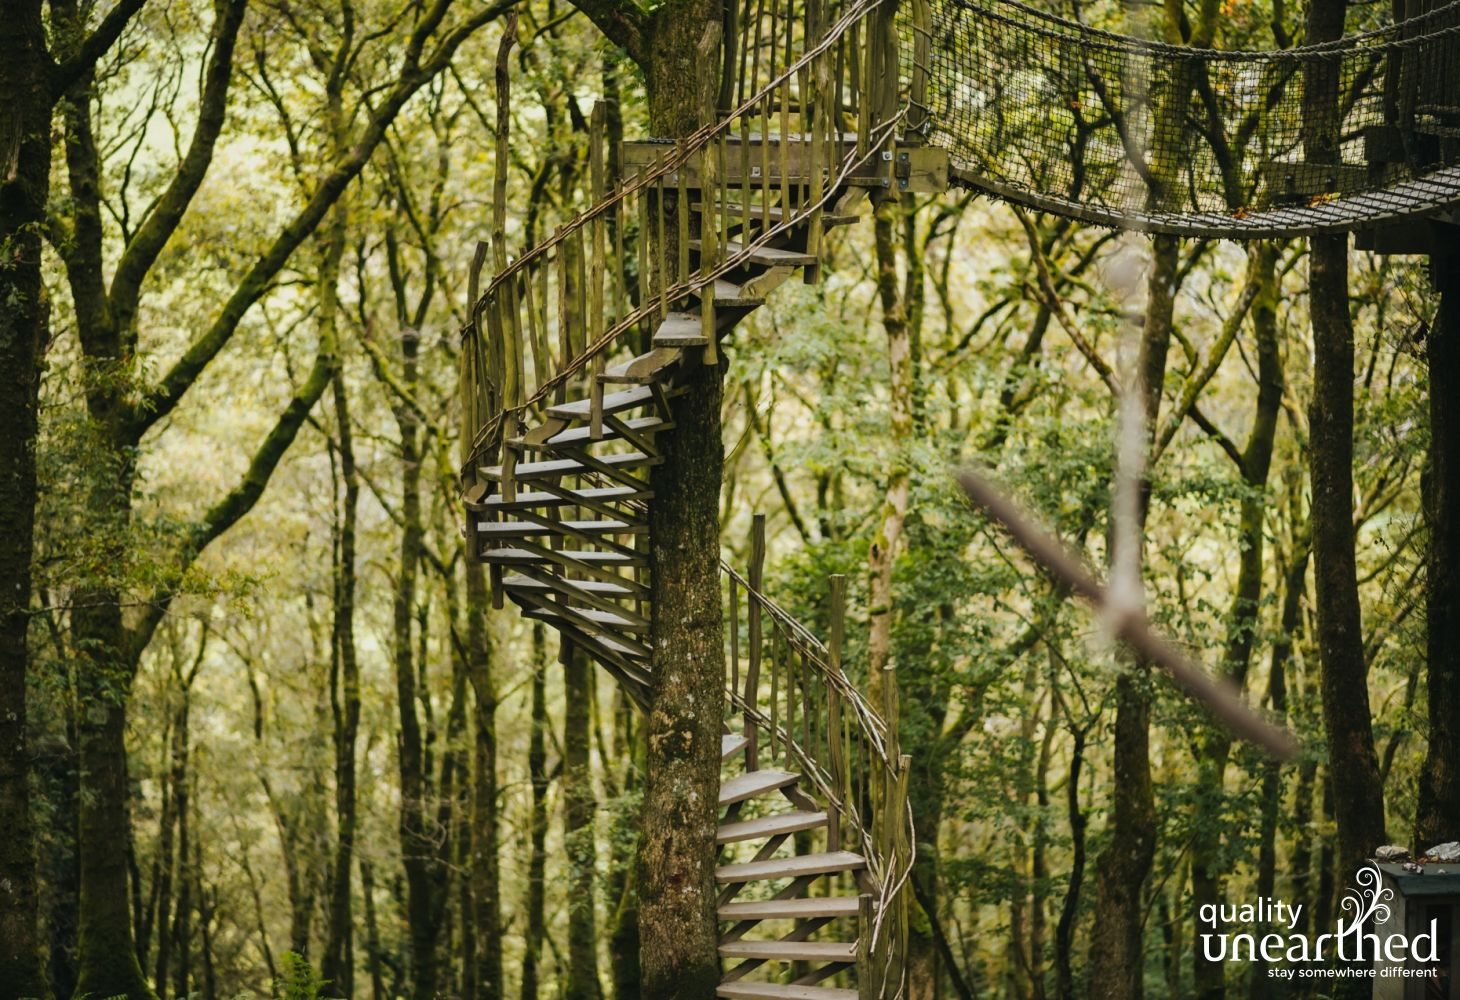 A handmade spiral staircase winds its way around a living tree to meet a rope bridge in mature woodland